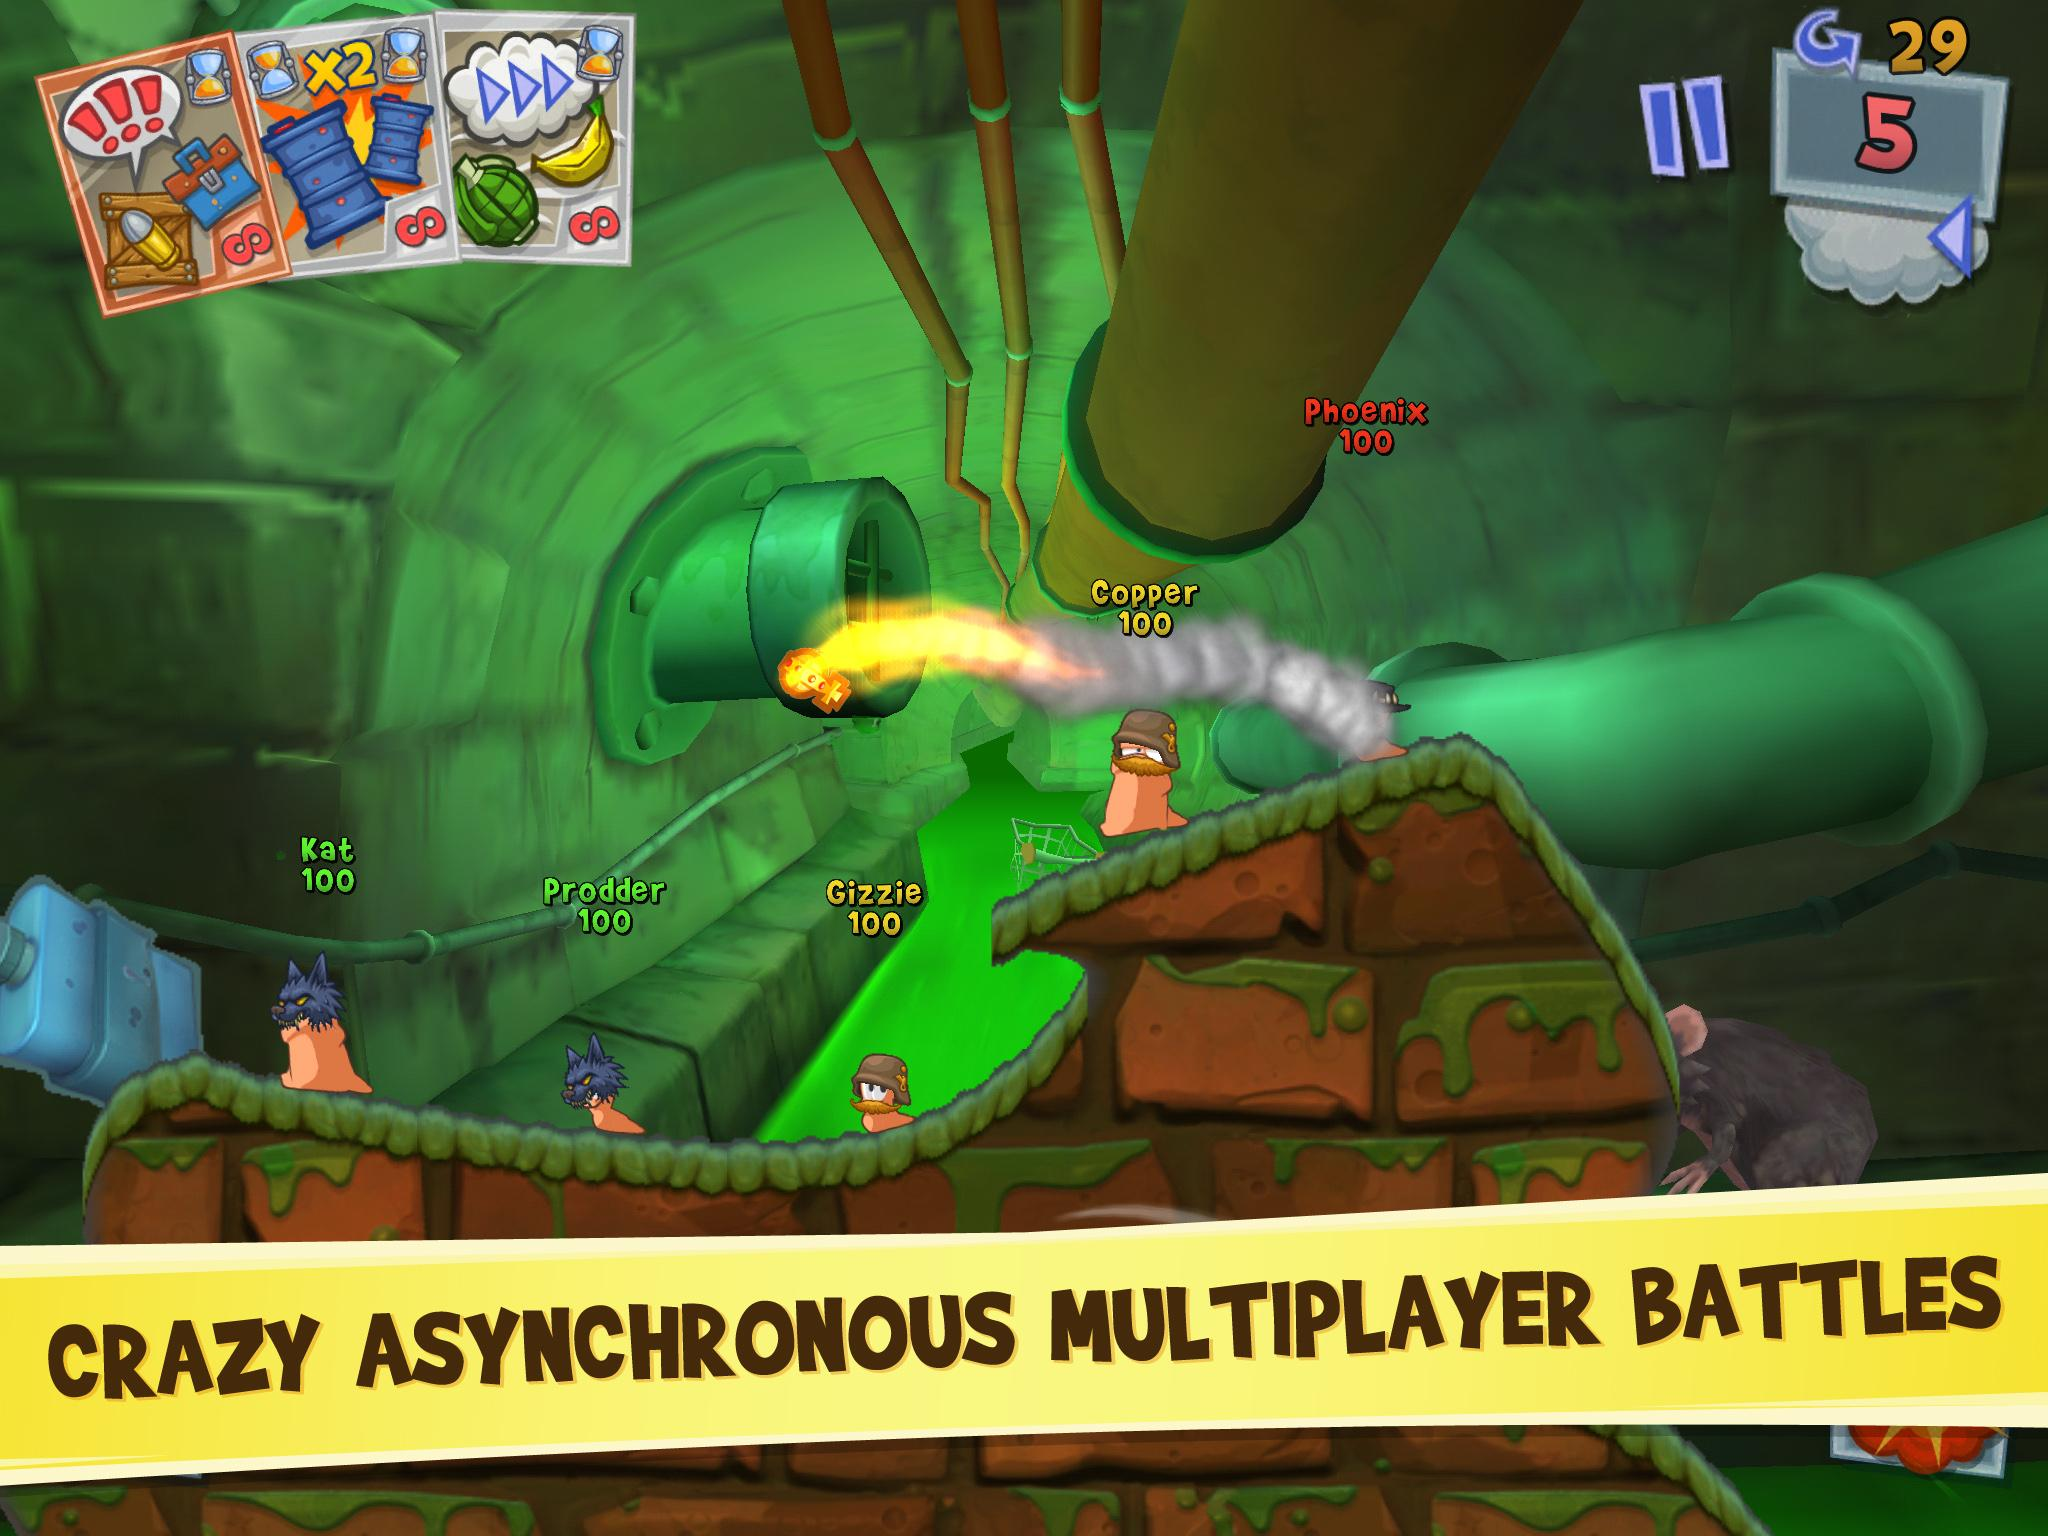 Download Worms 3 on PC with BlueStacks